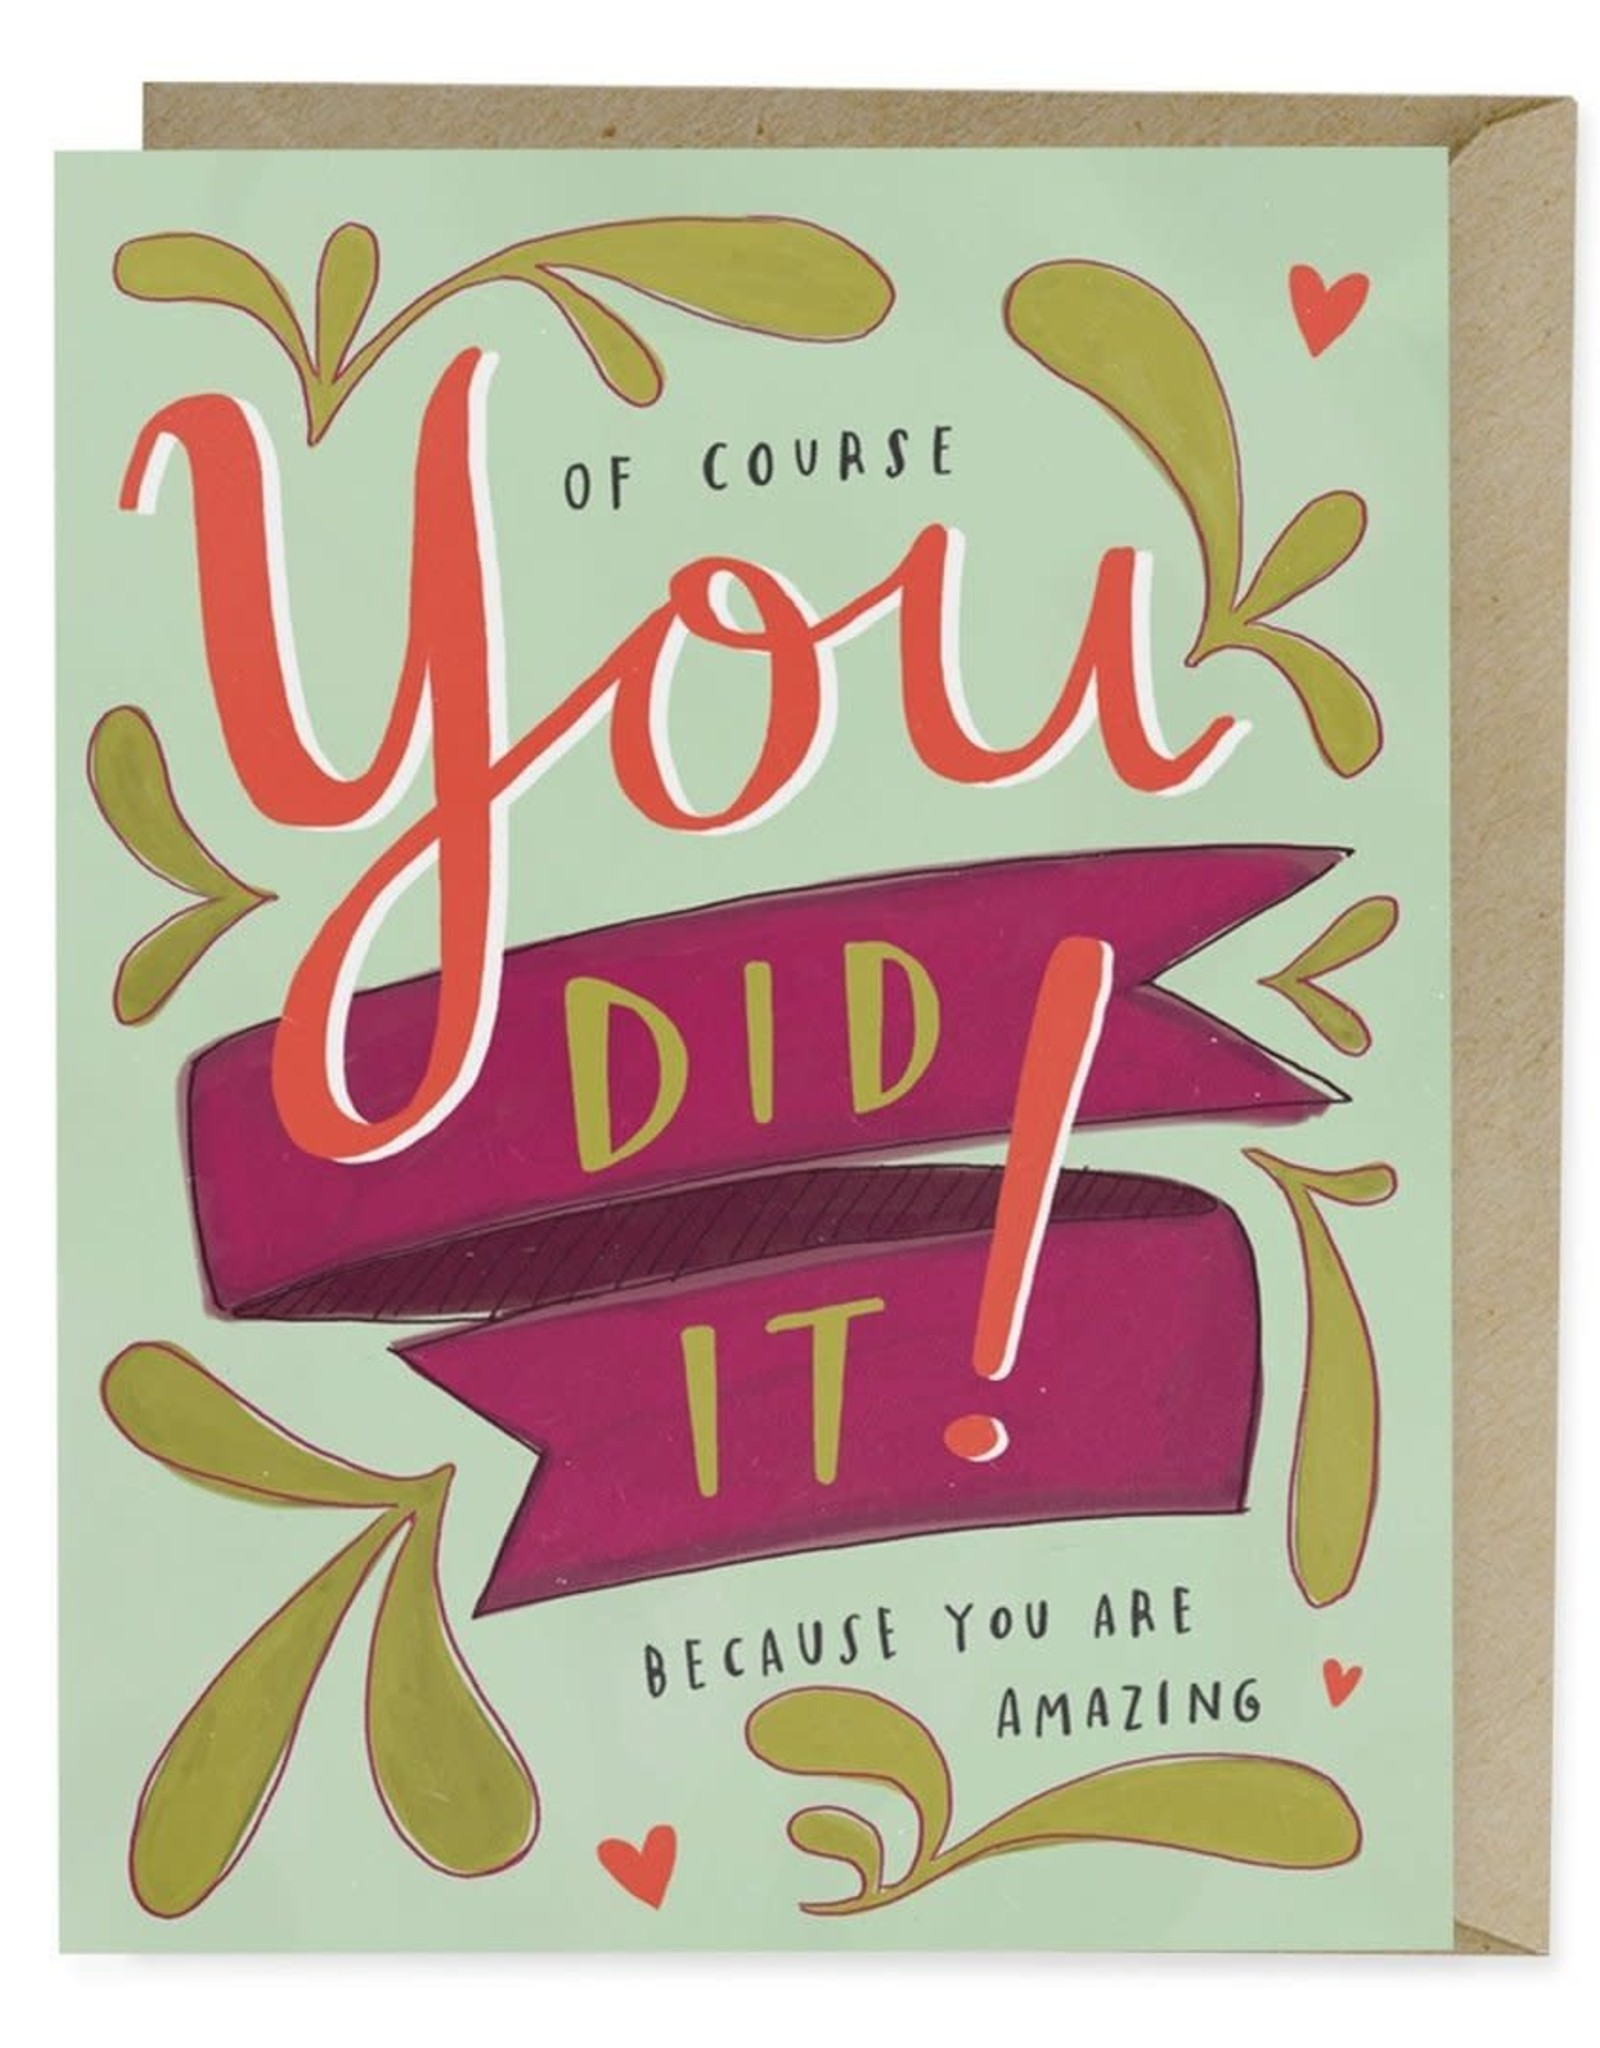 """Emily McDowell """"Of Course You Did It"""" Congratulations Greeting Card - Emily McDowell"""